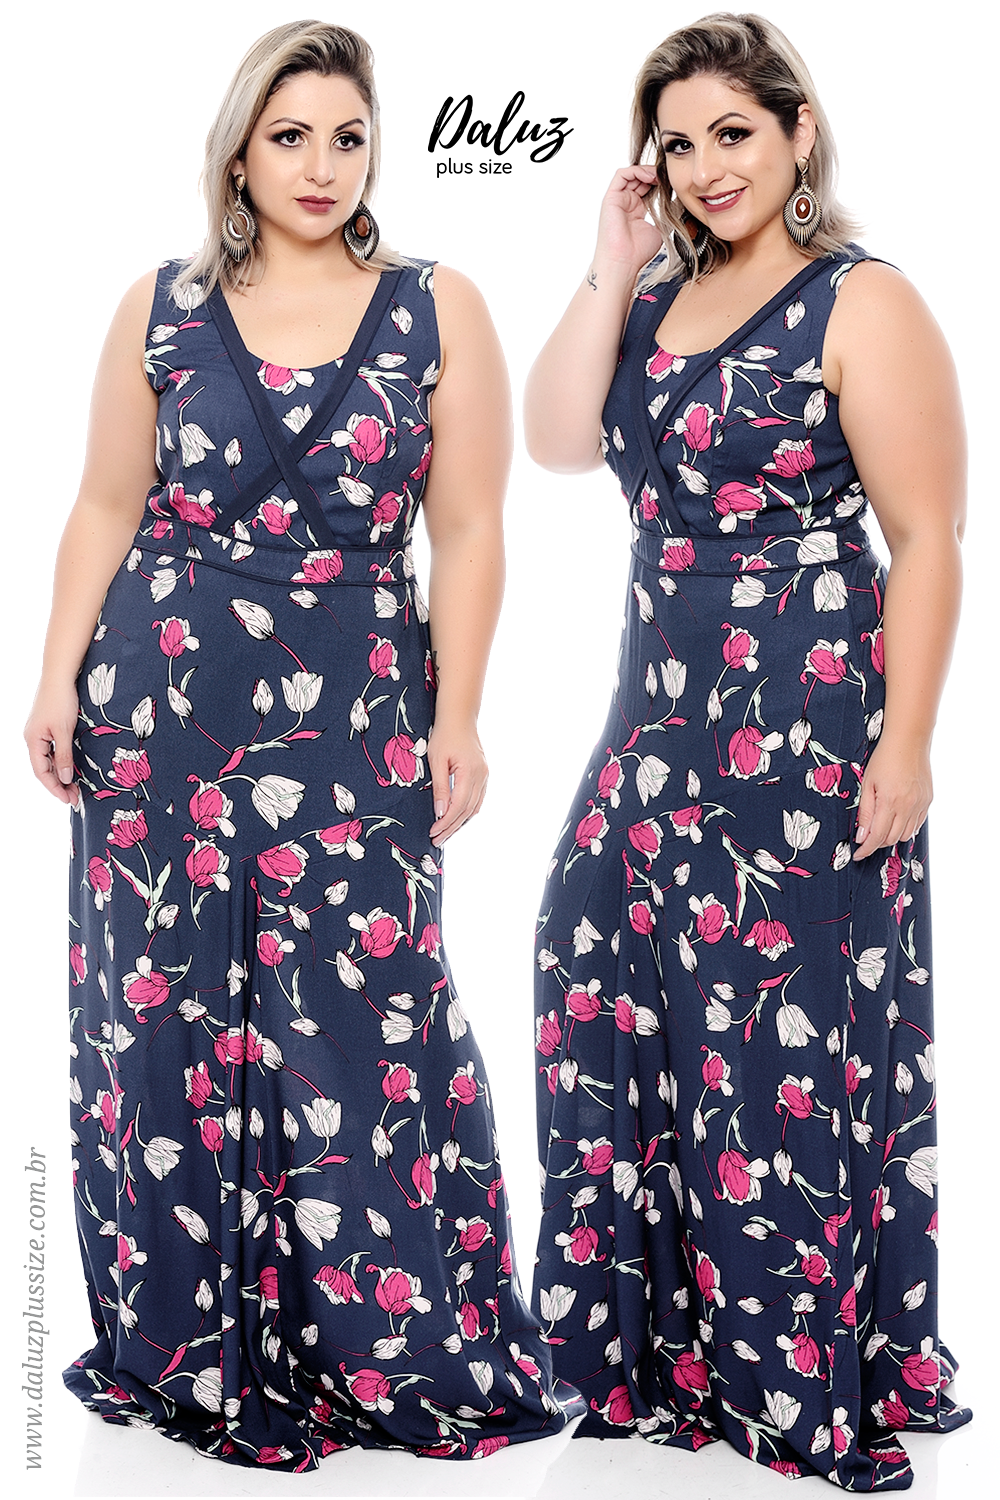 Vestido Plus Size Cersei | Pinterest | Moda, Vestidos and Size model